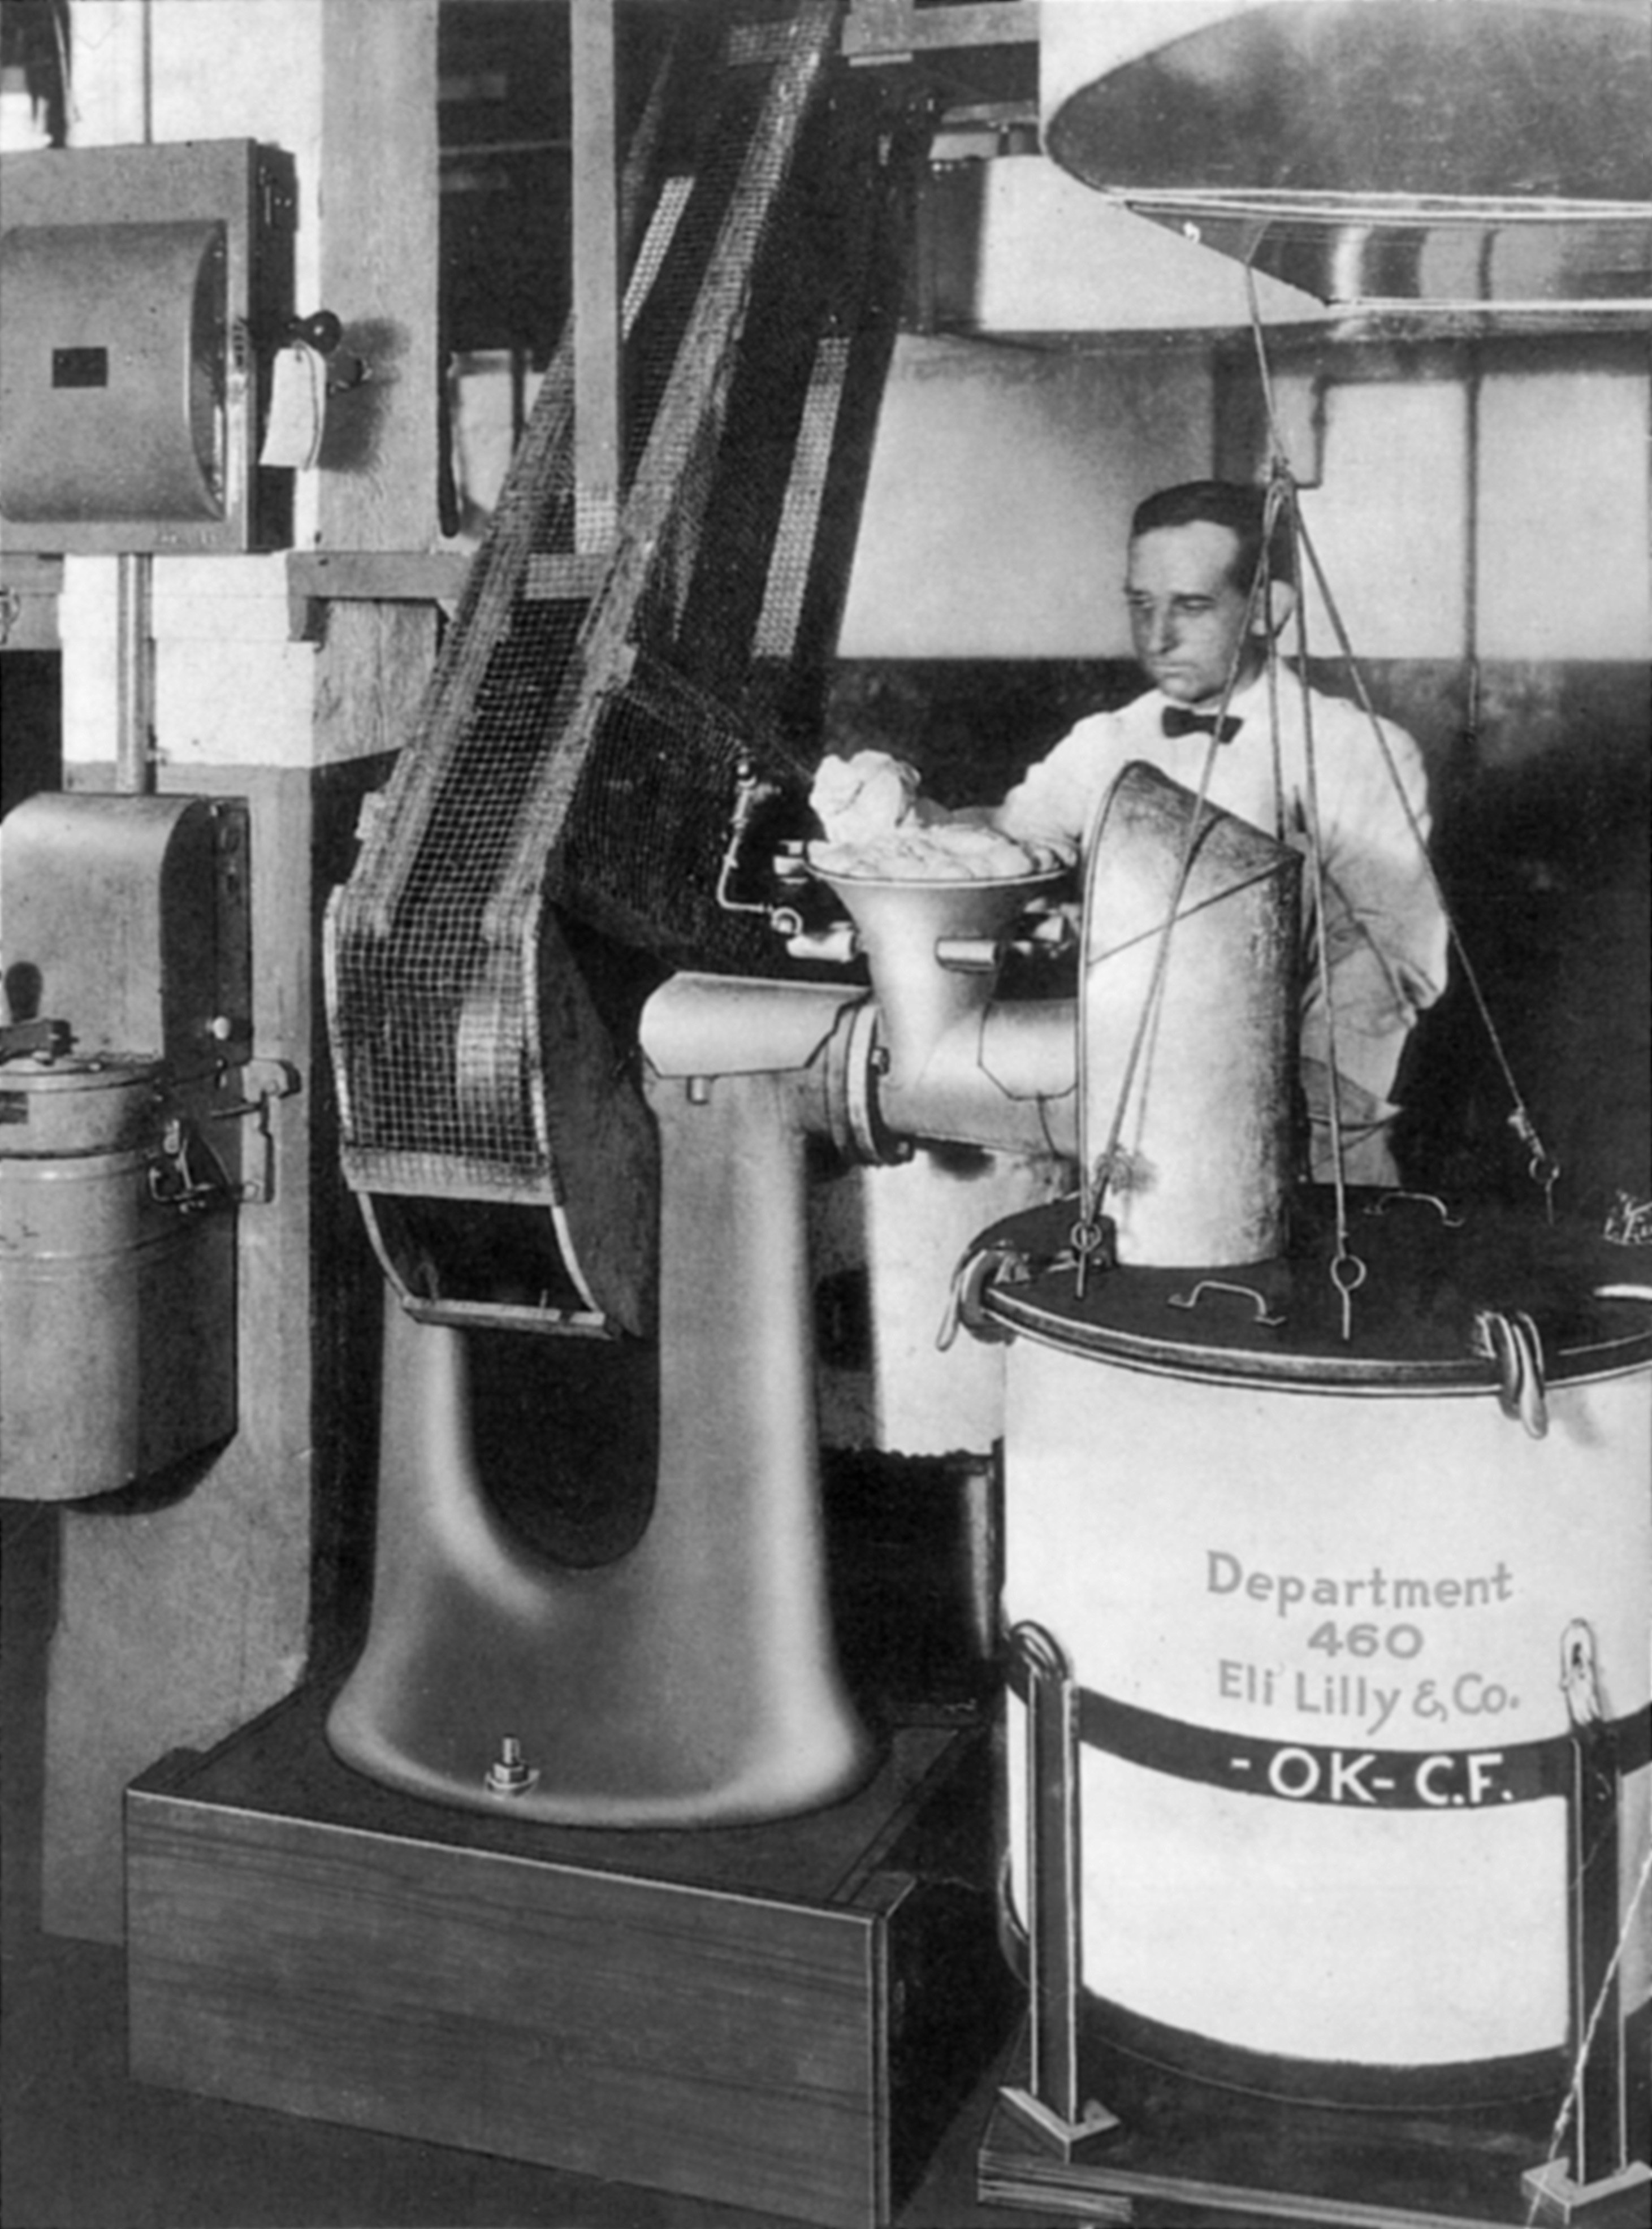 The original source of insulin was animal pancreases obtained from abattoirs. This picture shows the first stage of the extraction process (grinding the animal material) at the Indianapolis plant of the America pharmaceuticals company Eli Lilly in 1923.